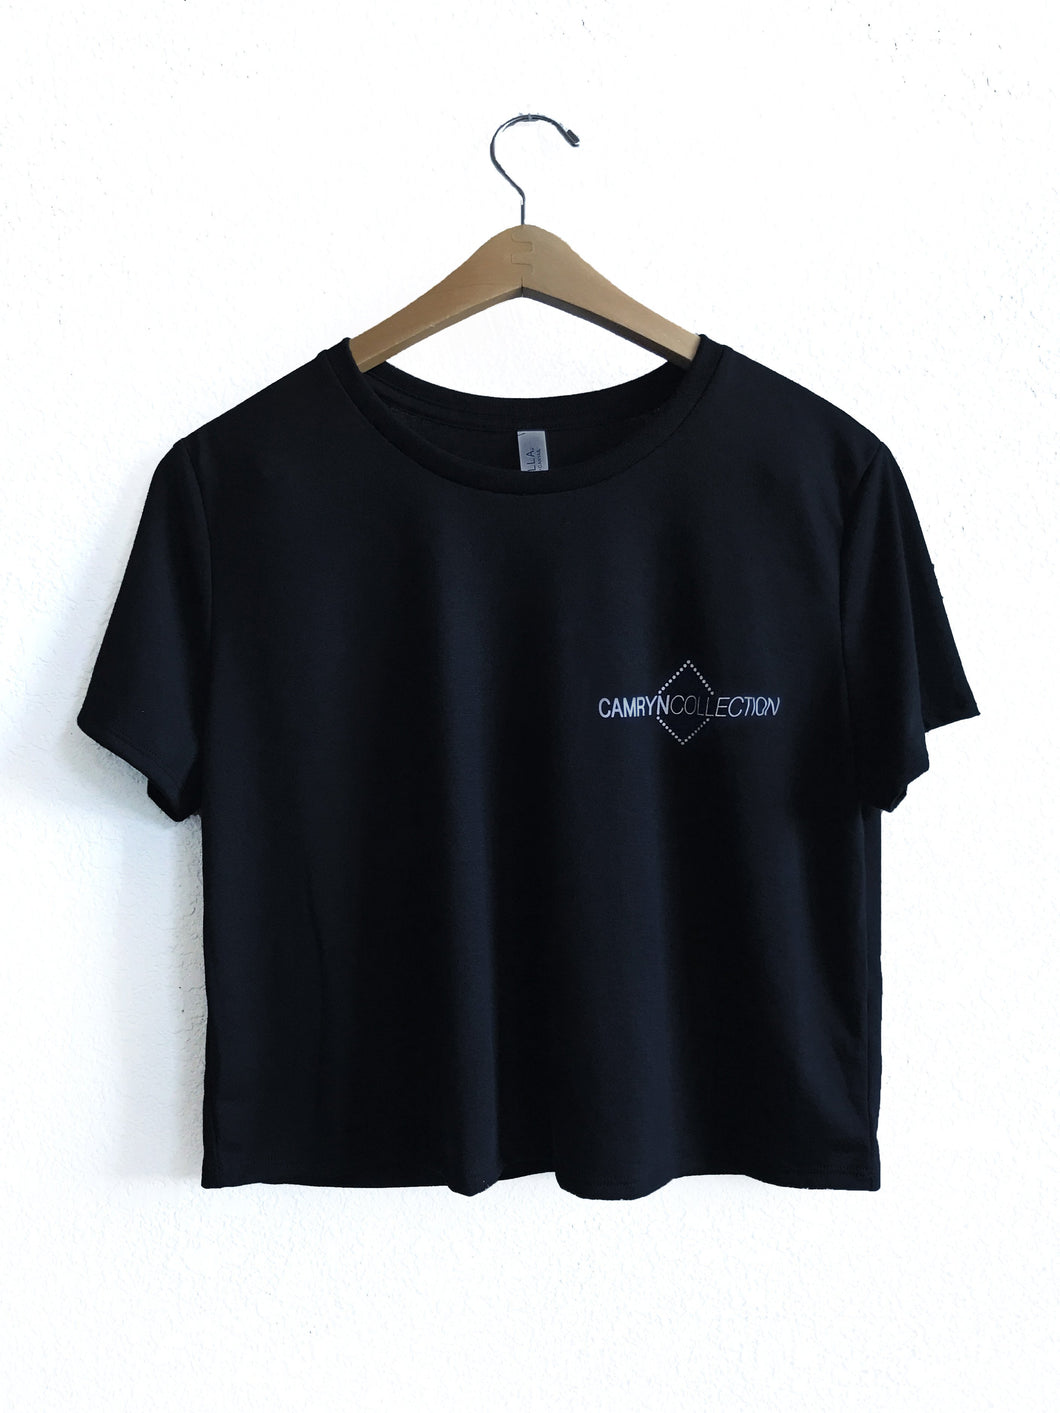 Camryn Collection Logo Cropped T-shirt